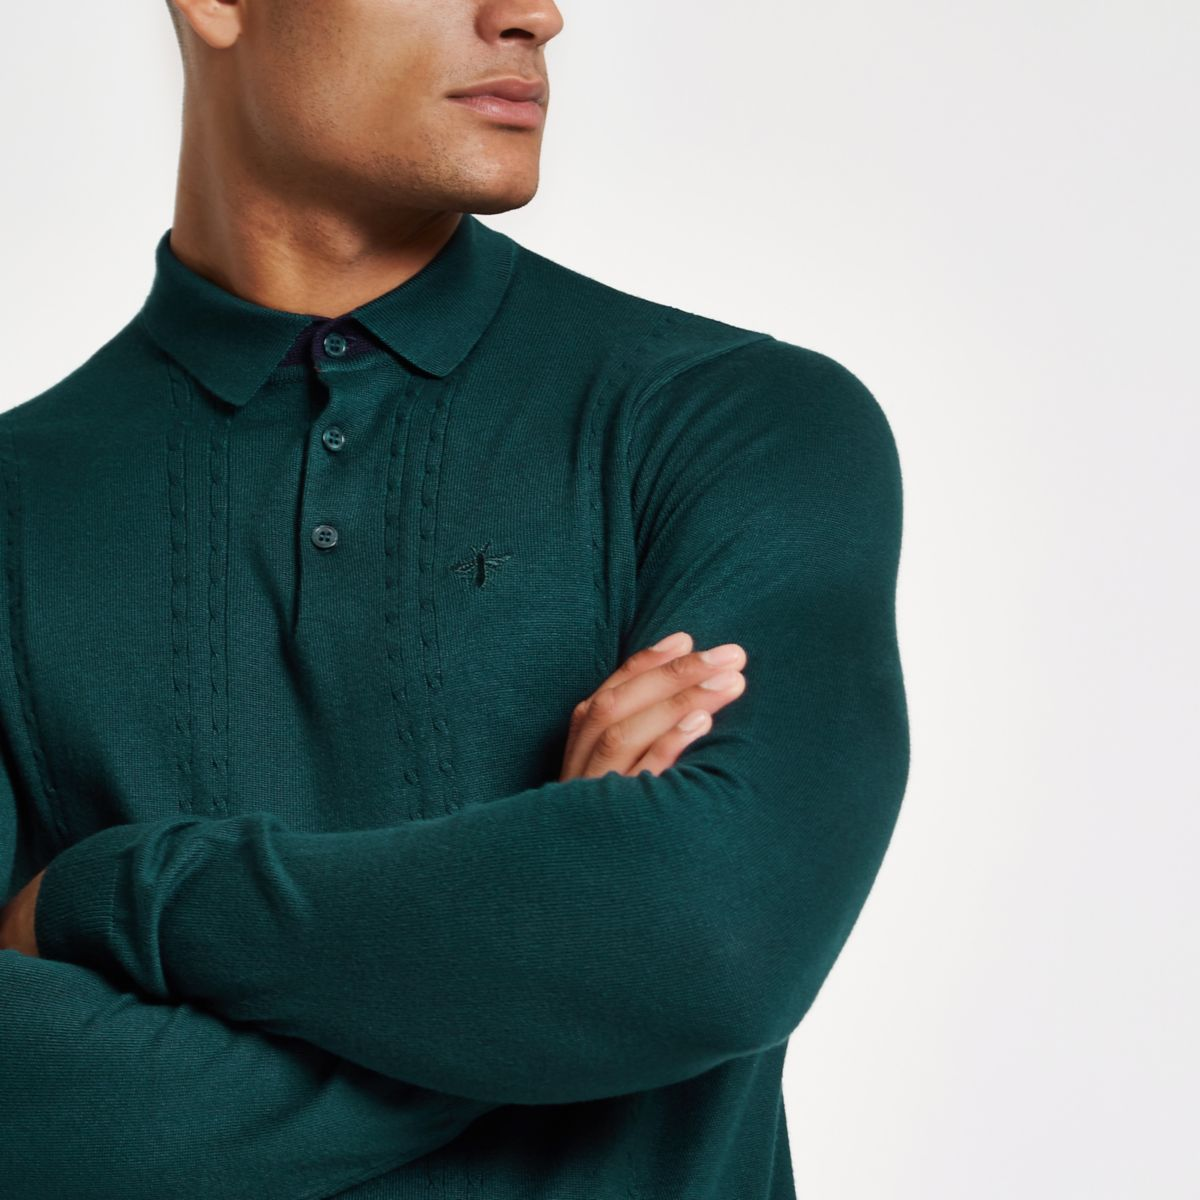 Teal cable slim fit long sleeve polo shirt